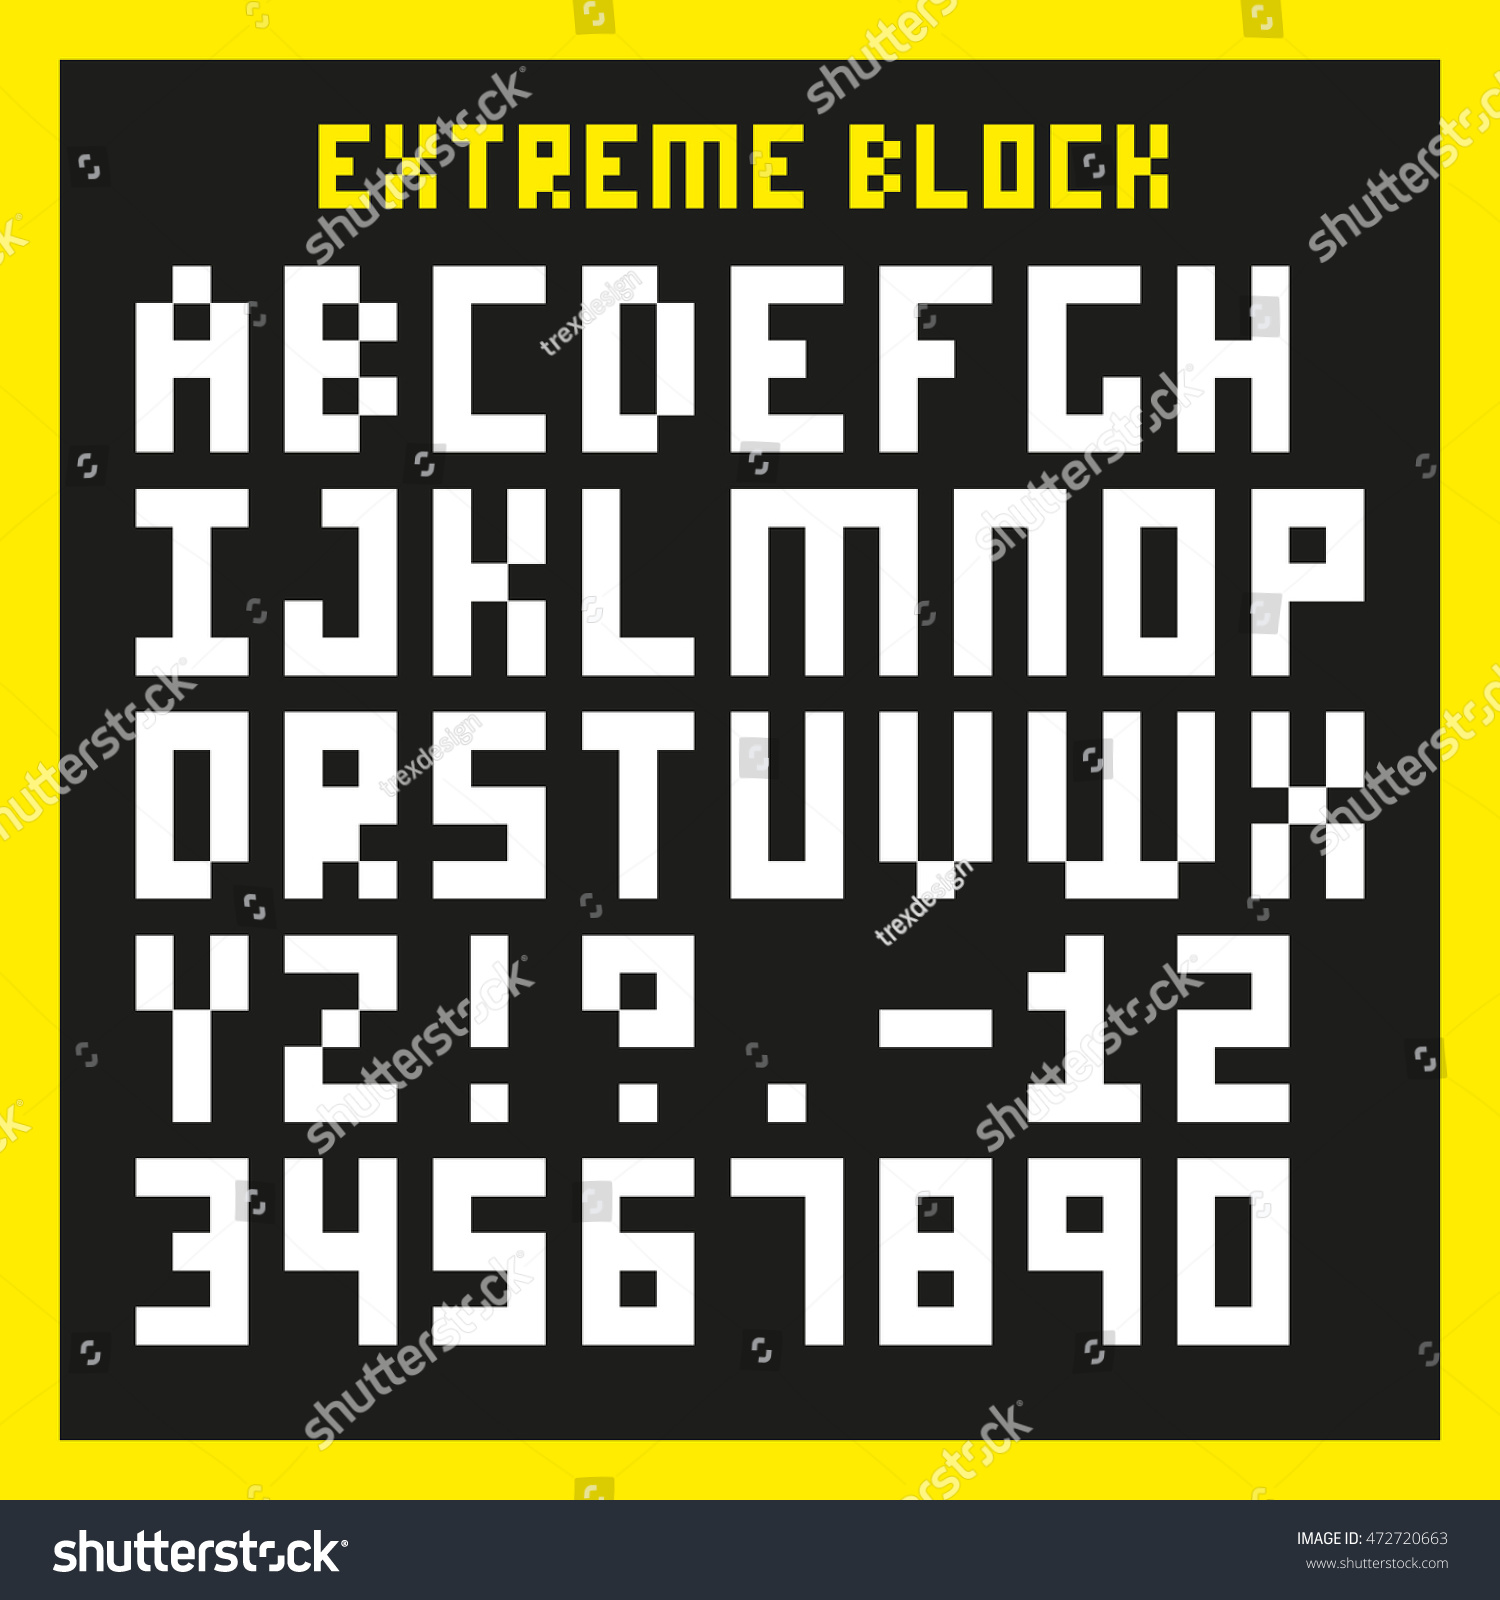 Extreme Block Font Heavily Pixelated Type Stock Vector Hd Royalty